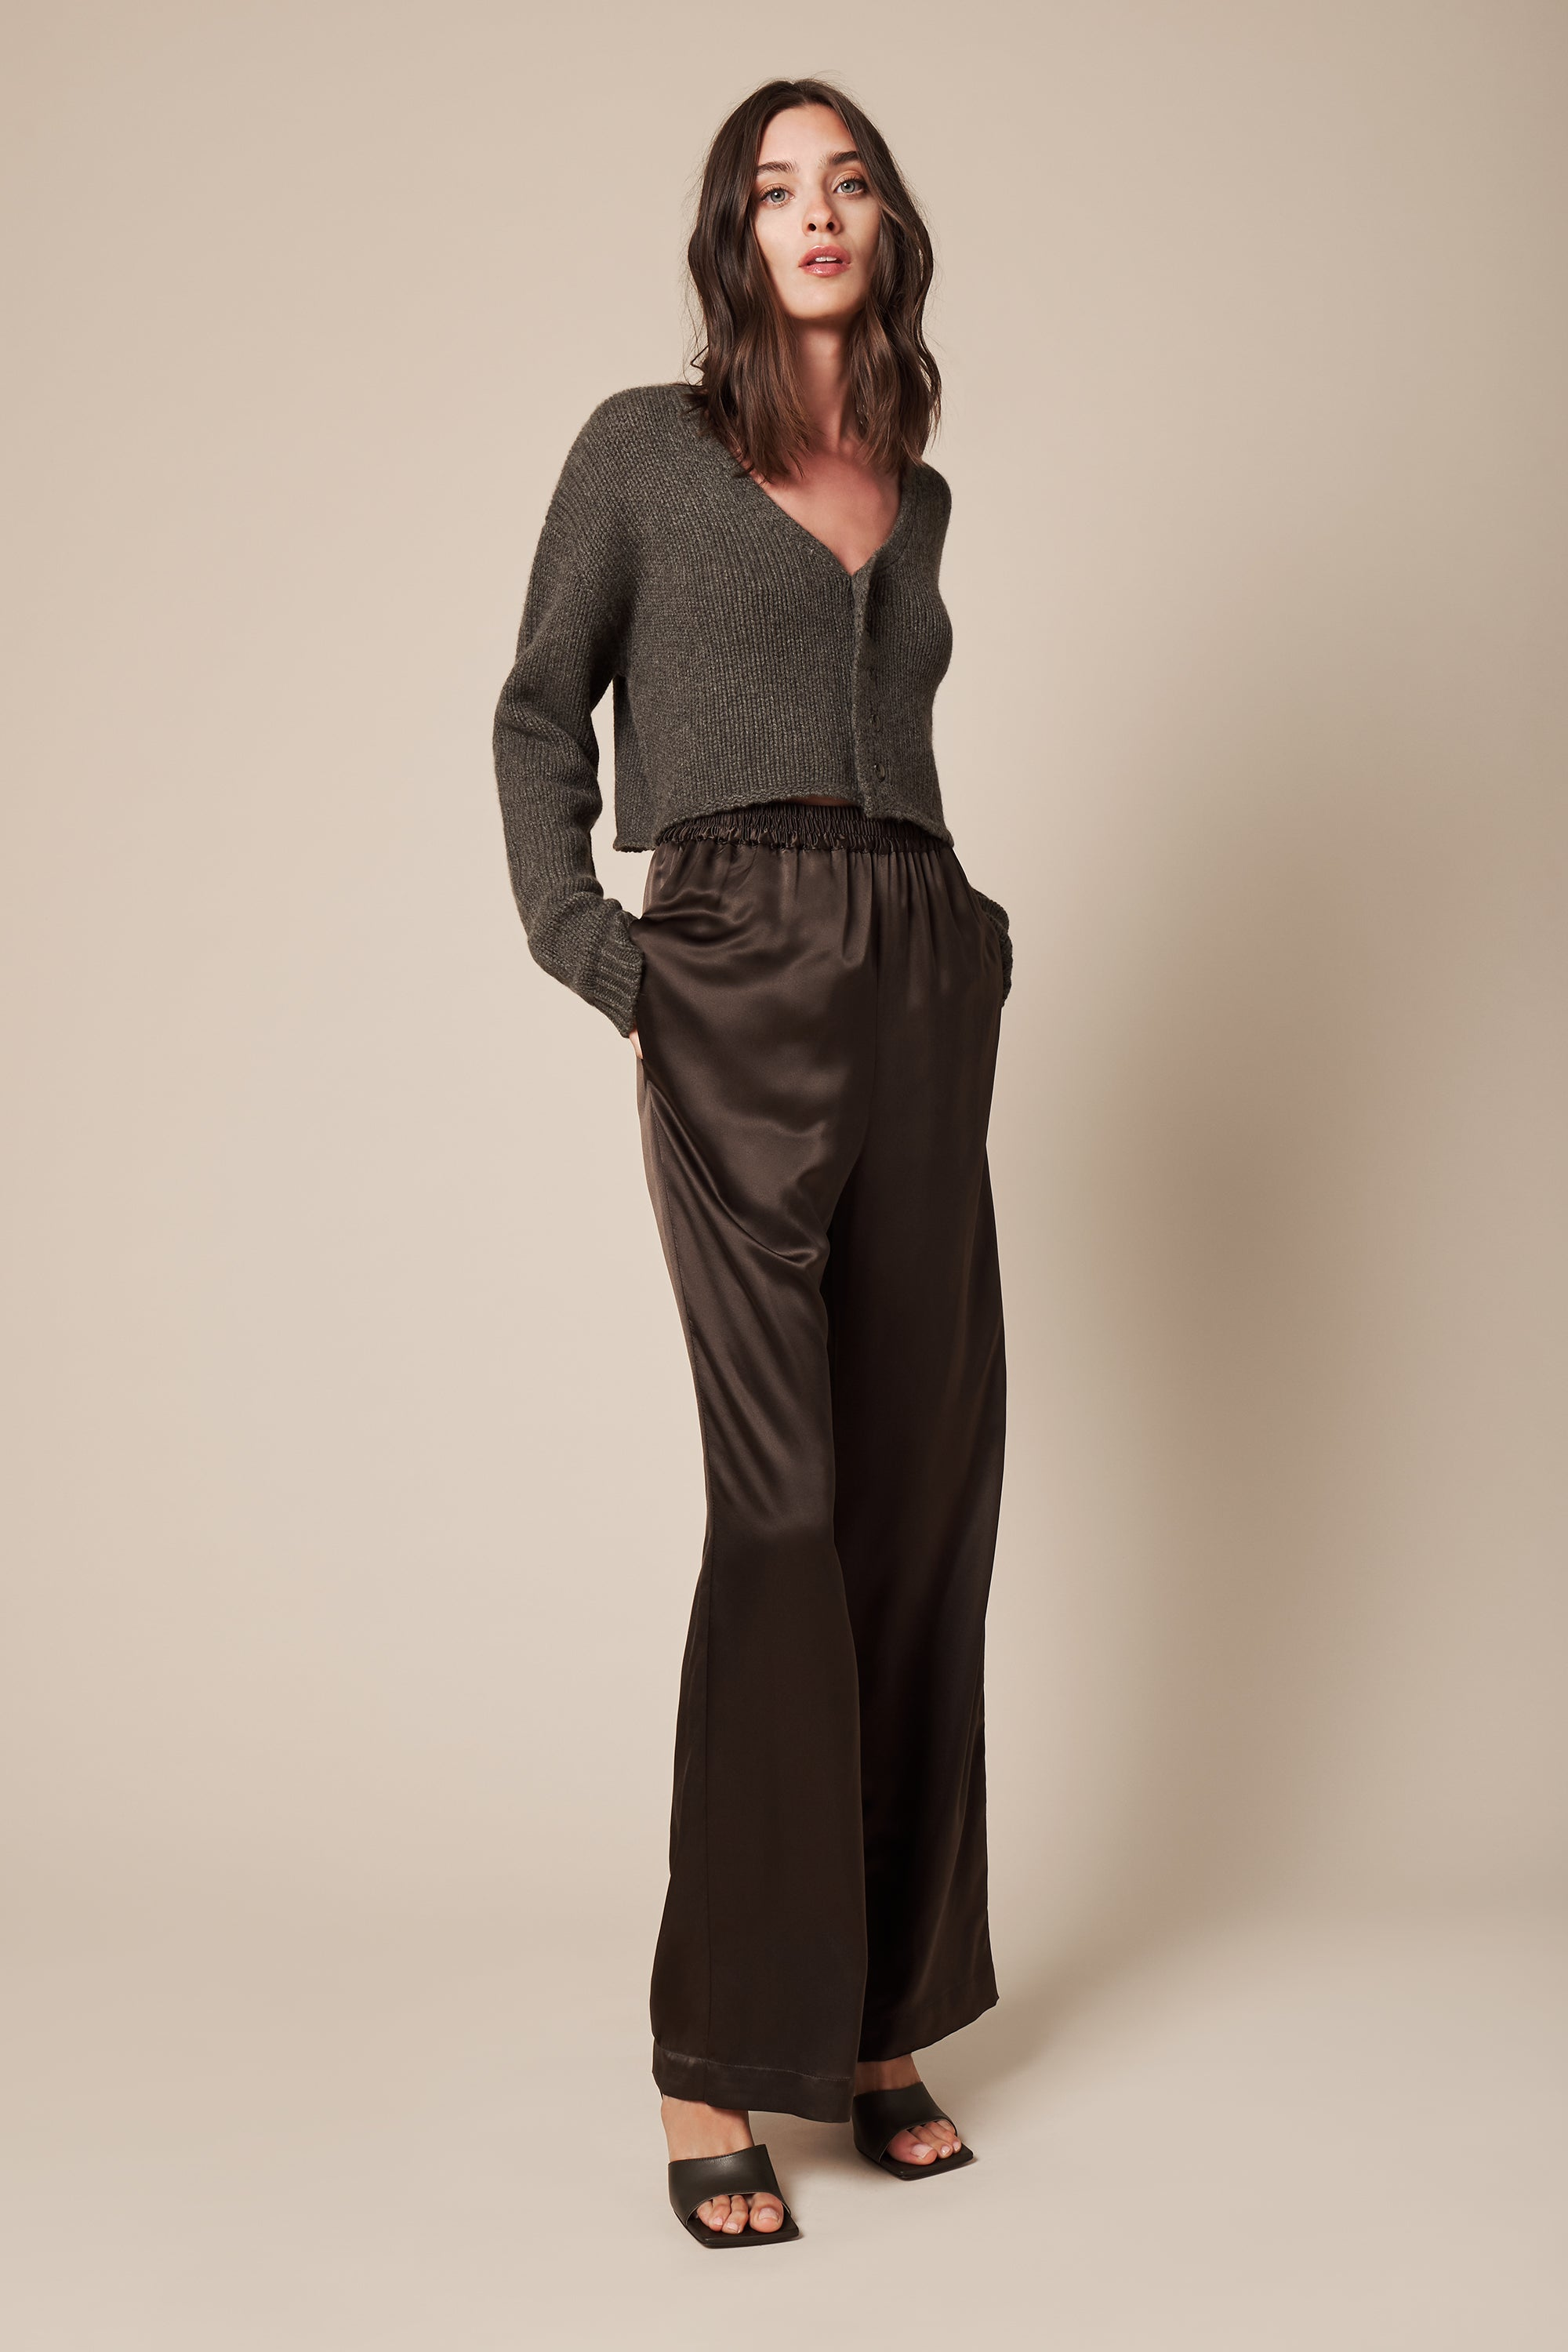 PENELOPE SILK PANT | OLIVE or POWDER - FINAL SALE